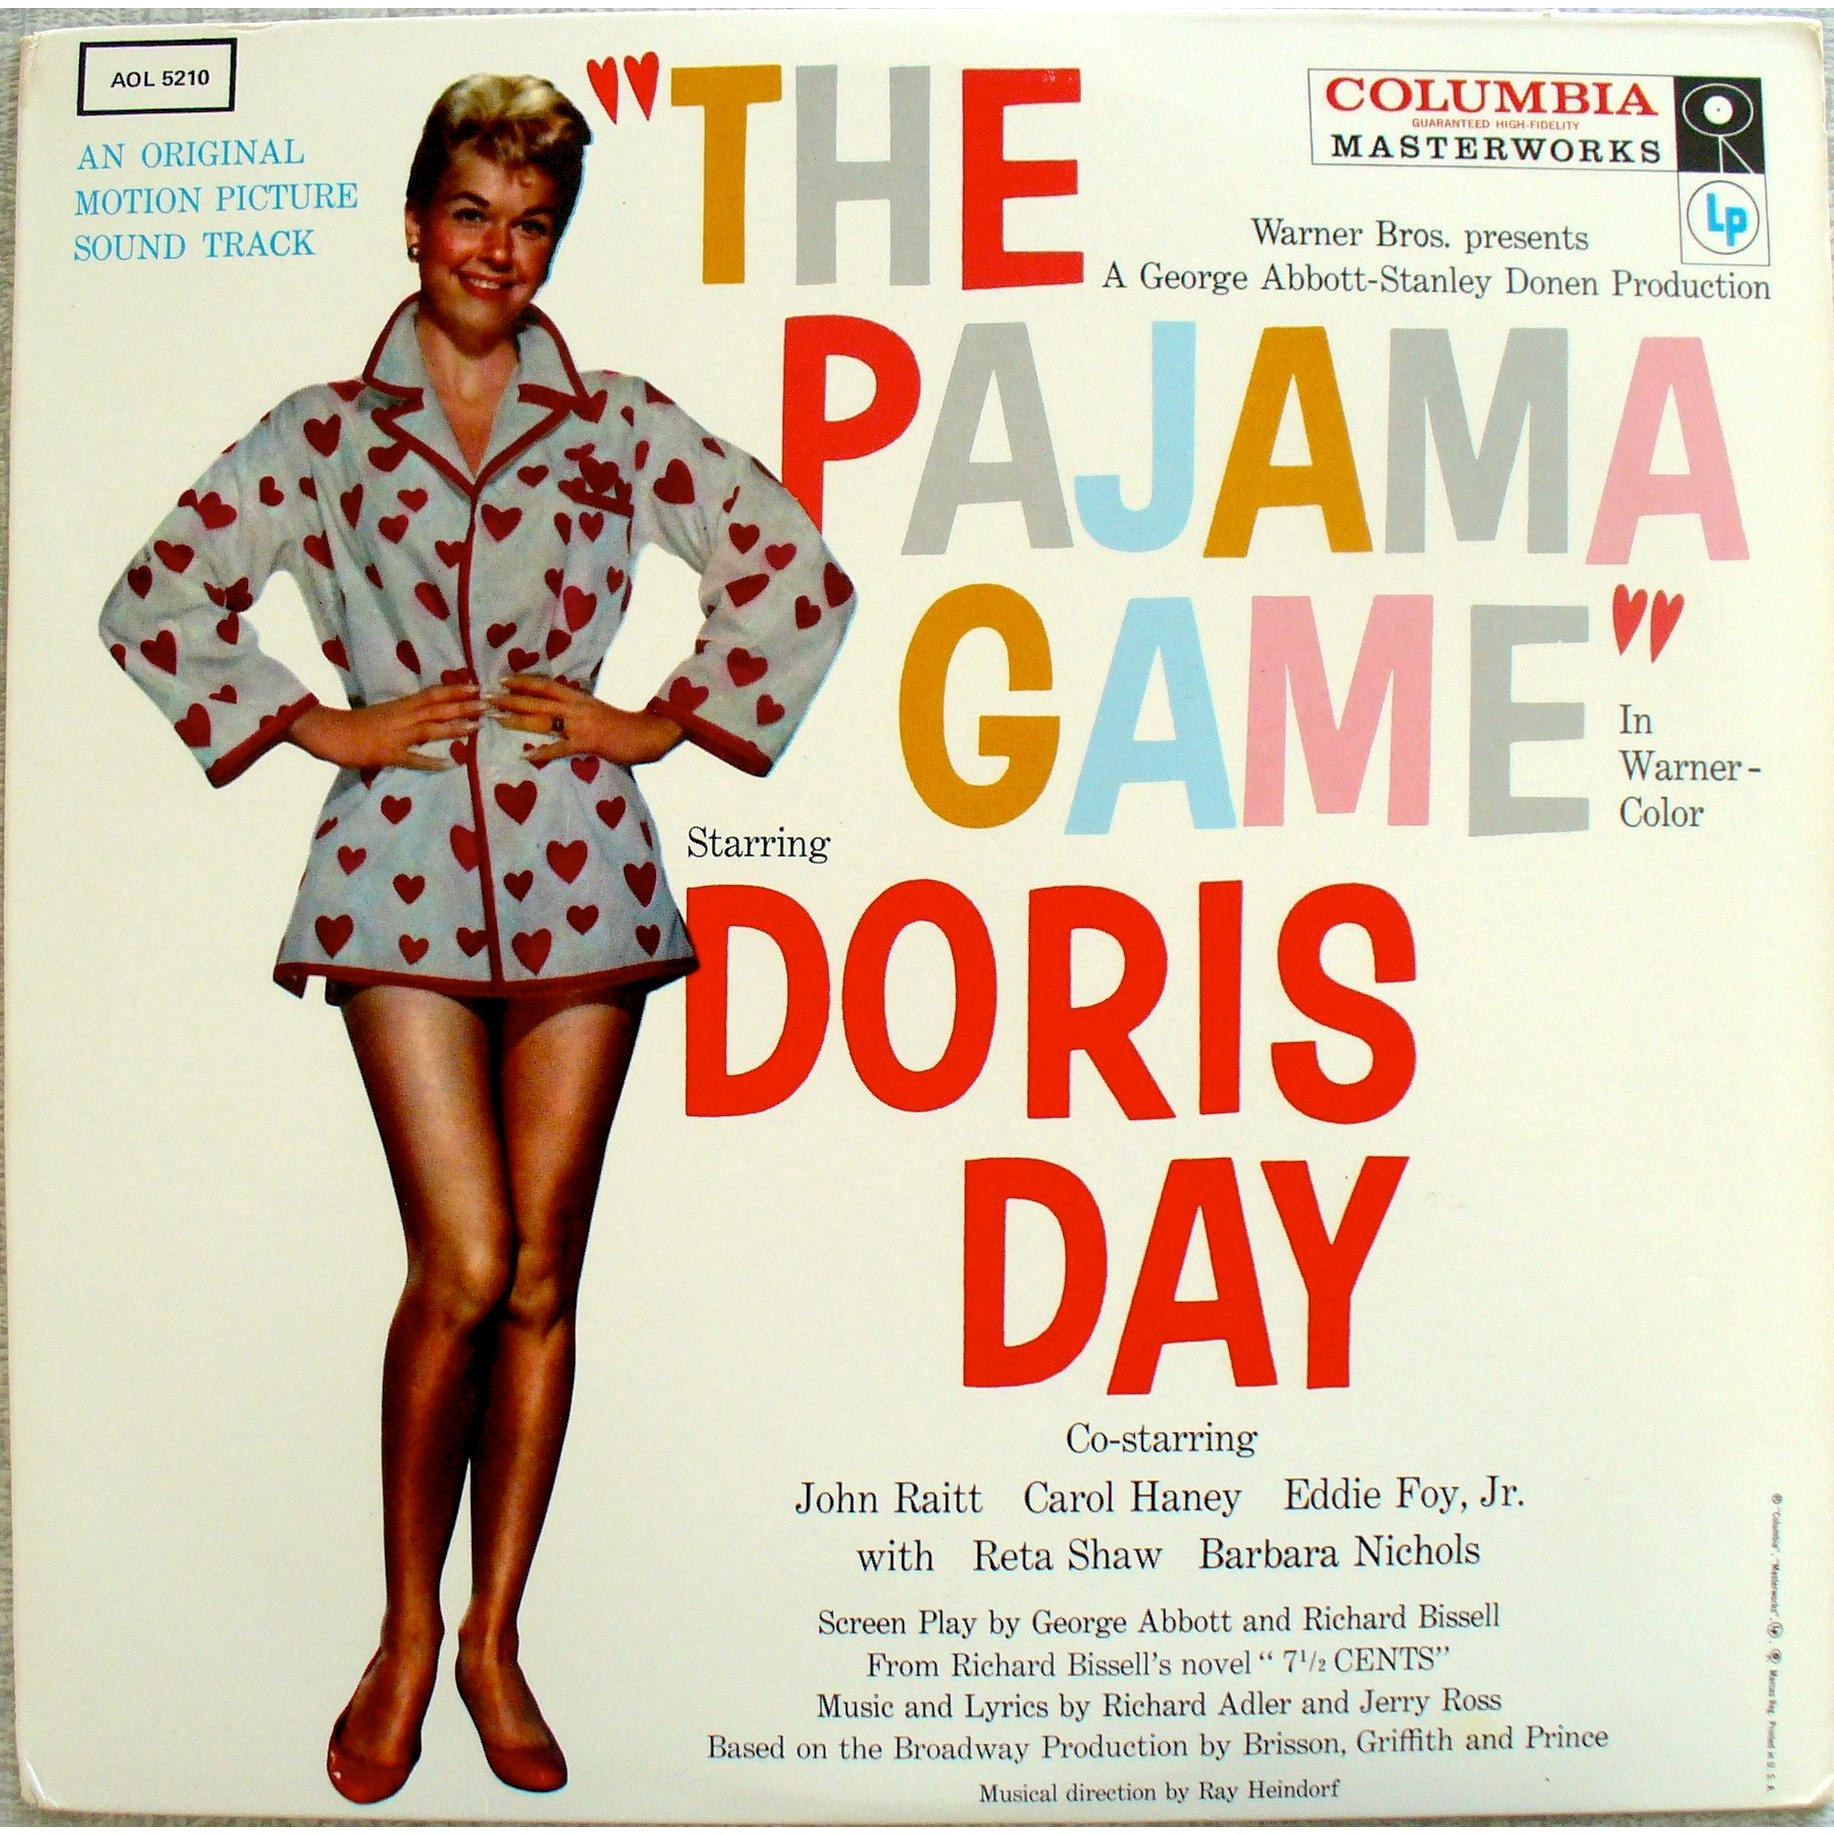 The pajama game by Richard Adler & Jerry Ross, LP with dukey - Ref ...